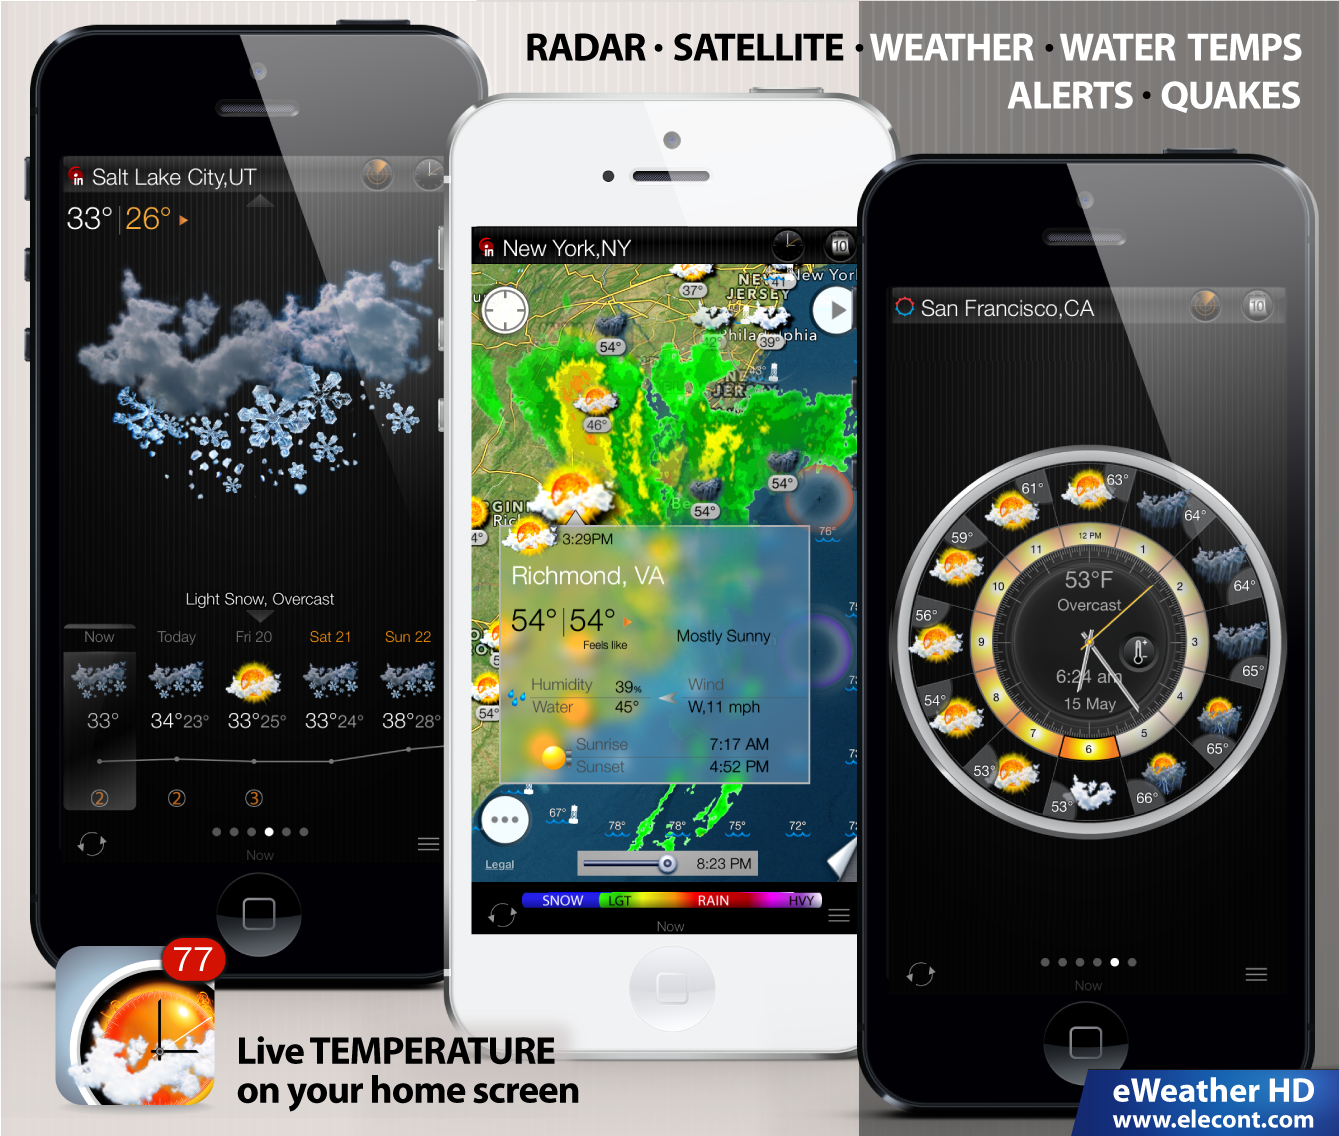 Phone Weather Radar Apps For Android Phones eweather hd 3 0 new ios 7 weather app hi res radar push alerts name iphone ipad png views 654 size 1 10 mb